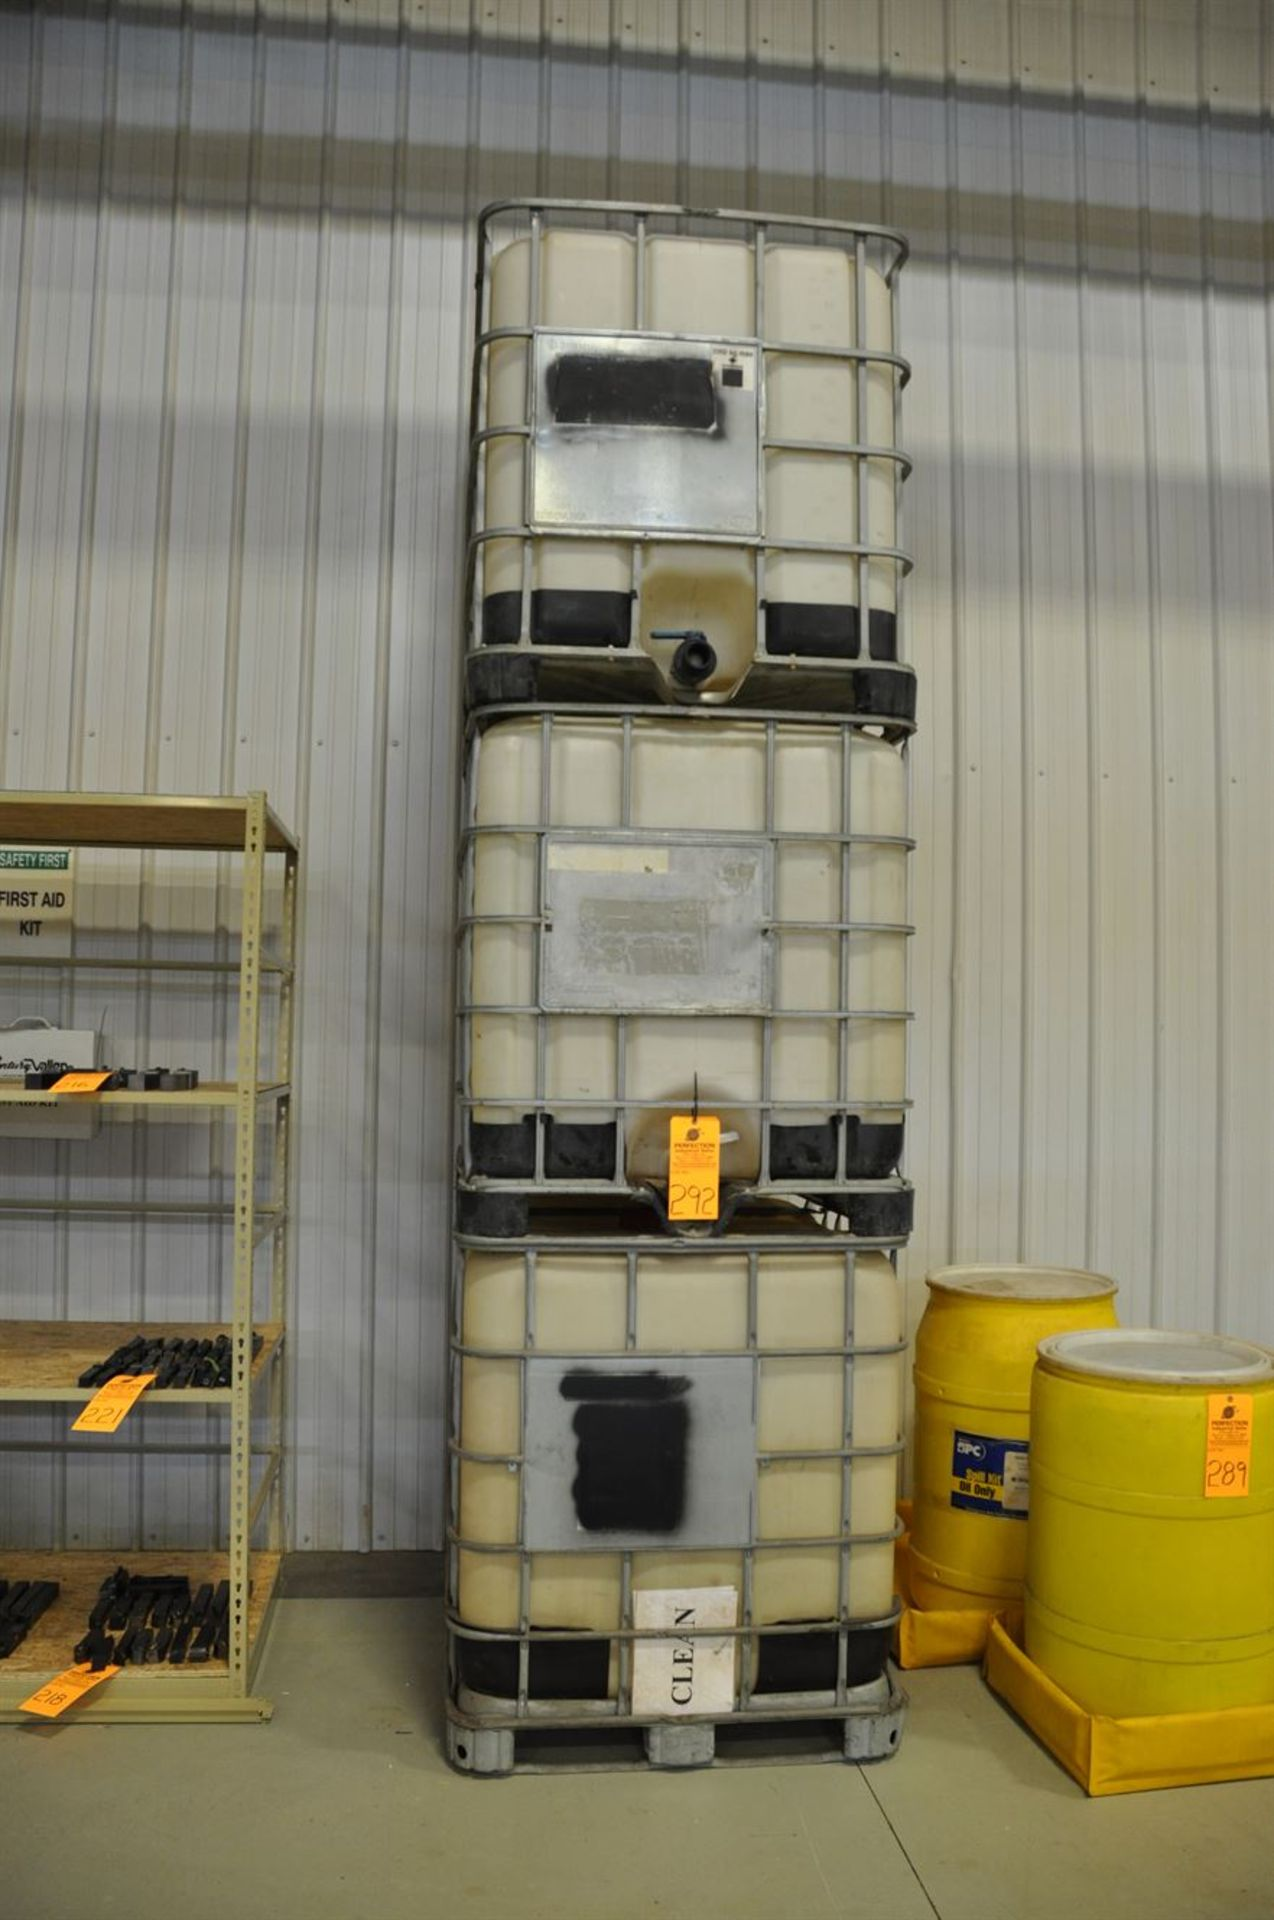 (3) Tote bins, 1000 litre, Note: washed but may contain residual oil and/or glycol